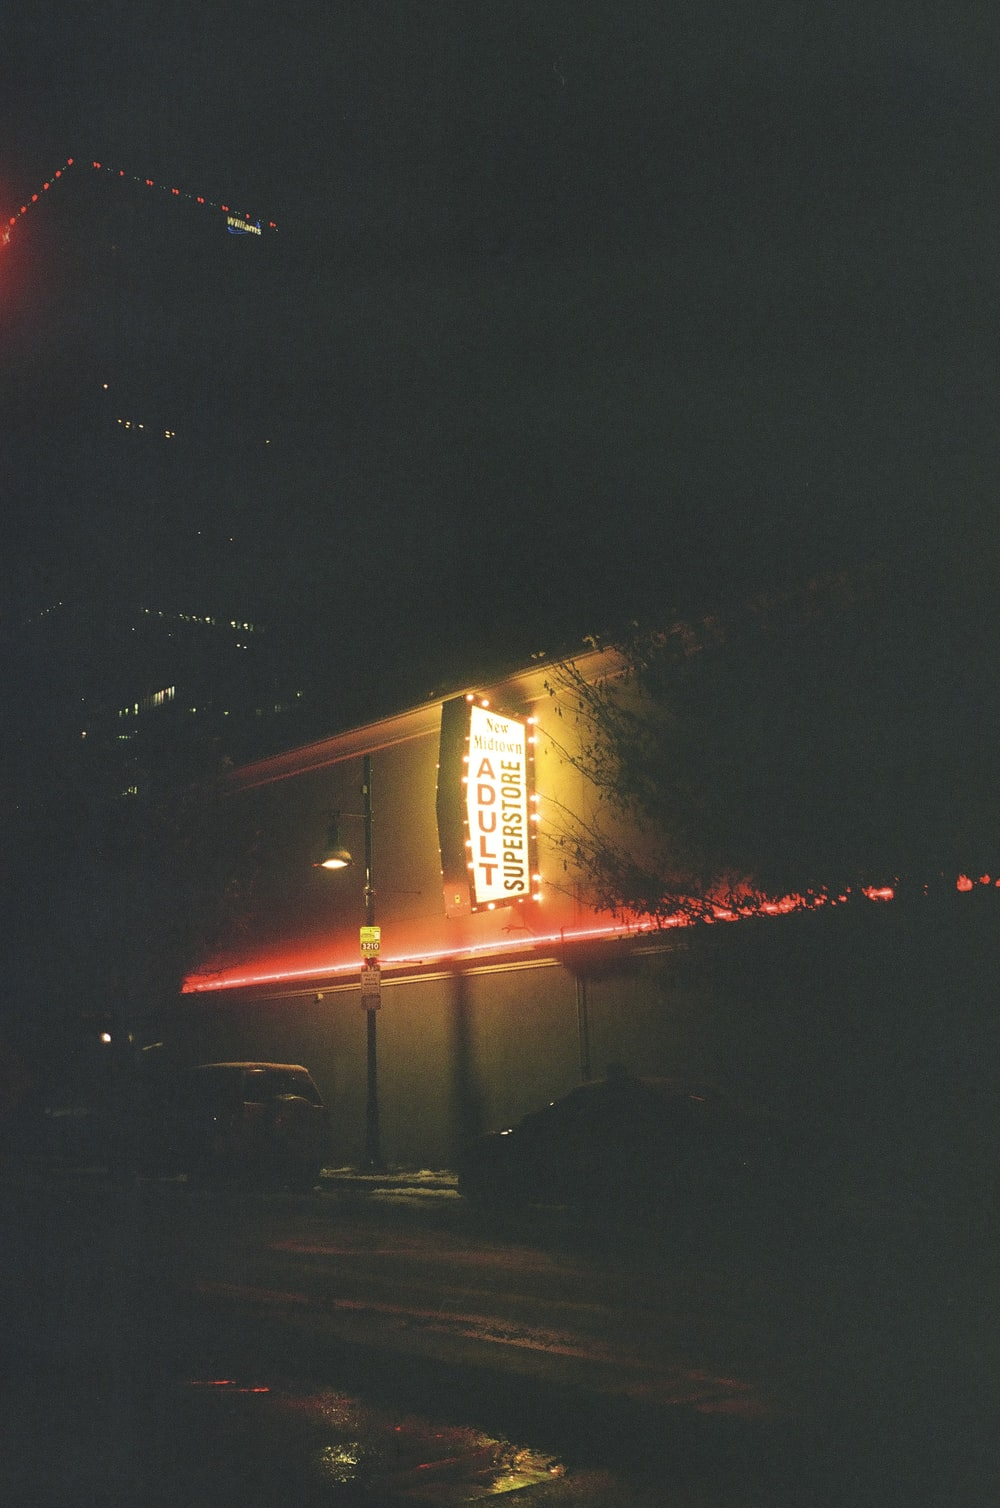 white and red lighted building during night time